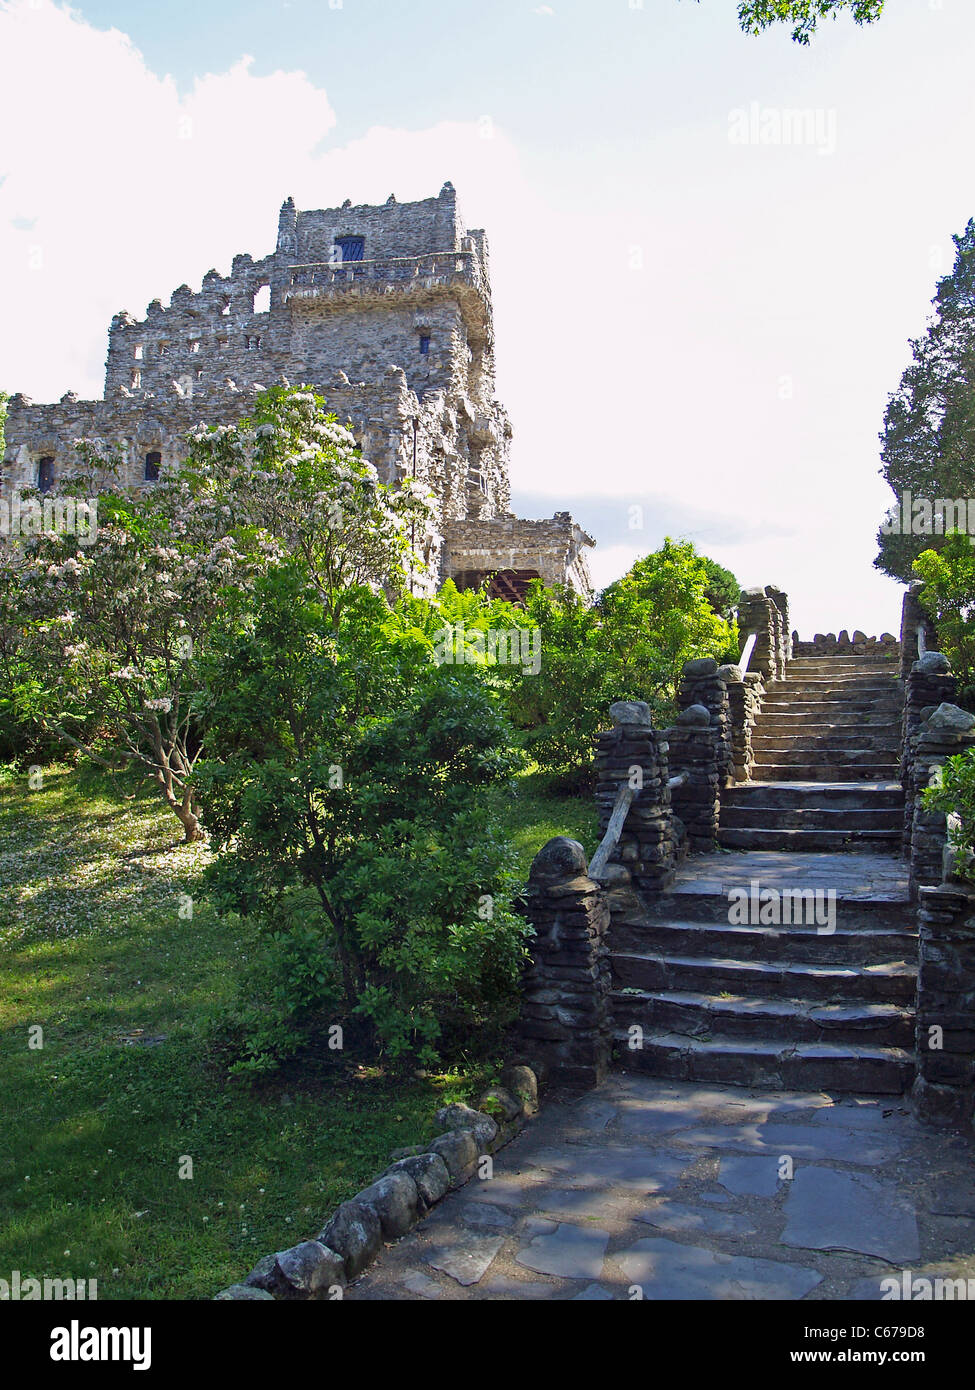 Gillette Castle, East Haddam, Connecticut - Stock Image